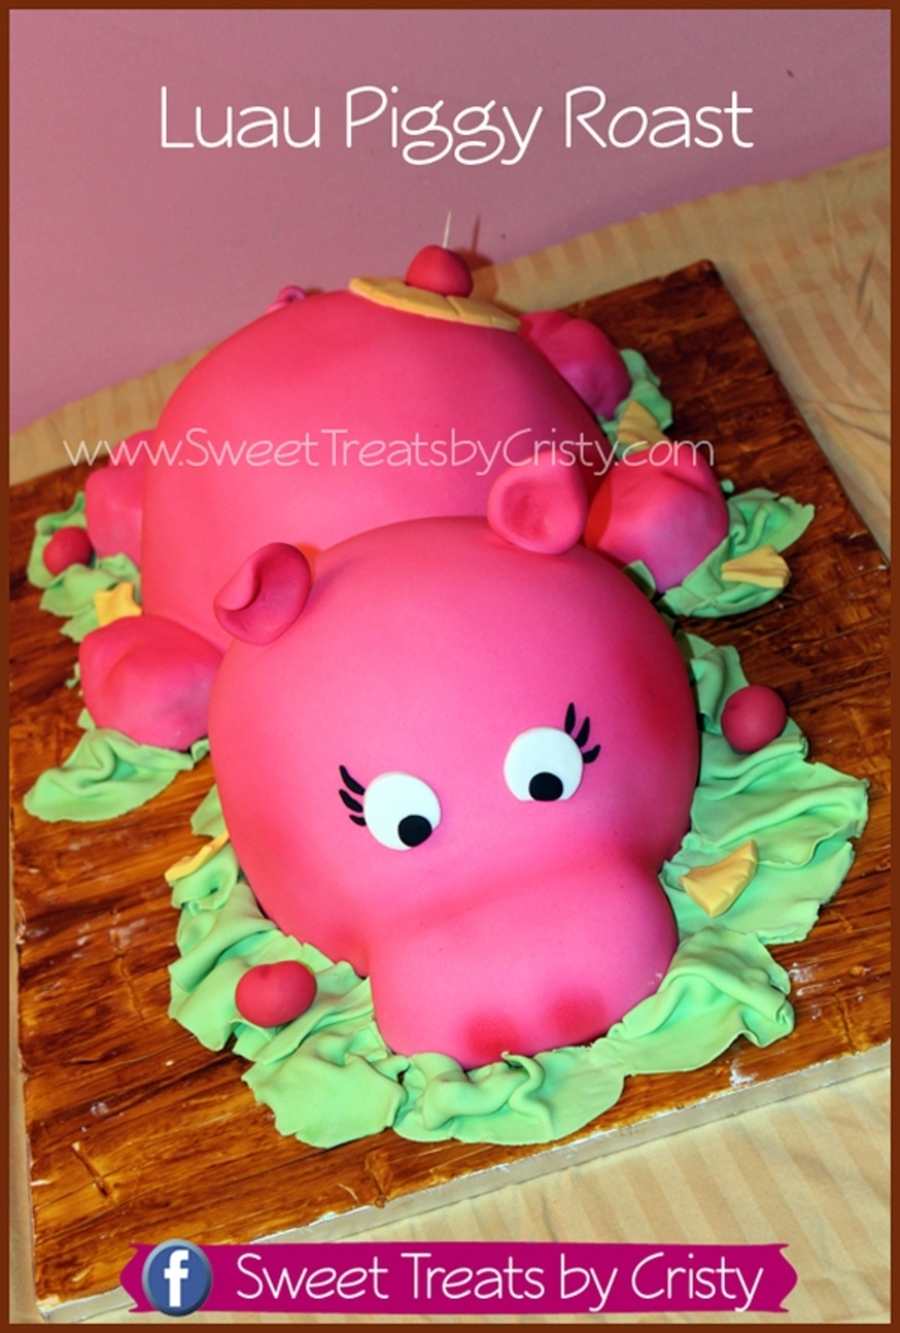 Luau Piggy Roast on Cake Central